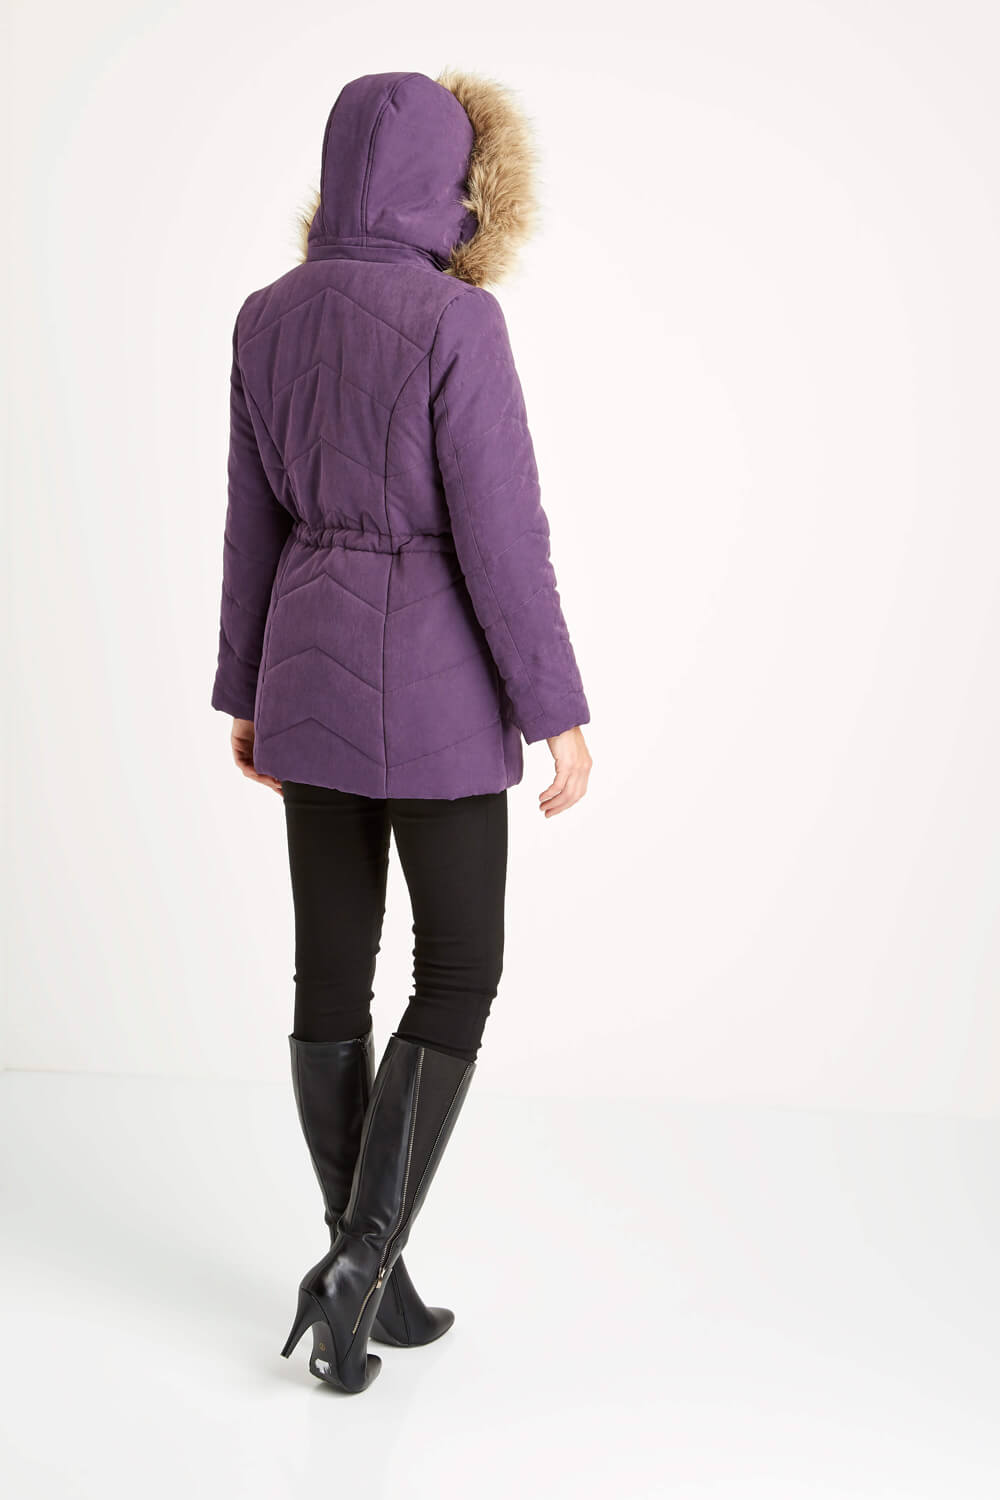 Roman-Originals-Women-039-s-Blue-Quilted-Parka-Coat-with-Hood-Sizes-10-20 thumbnail 22